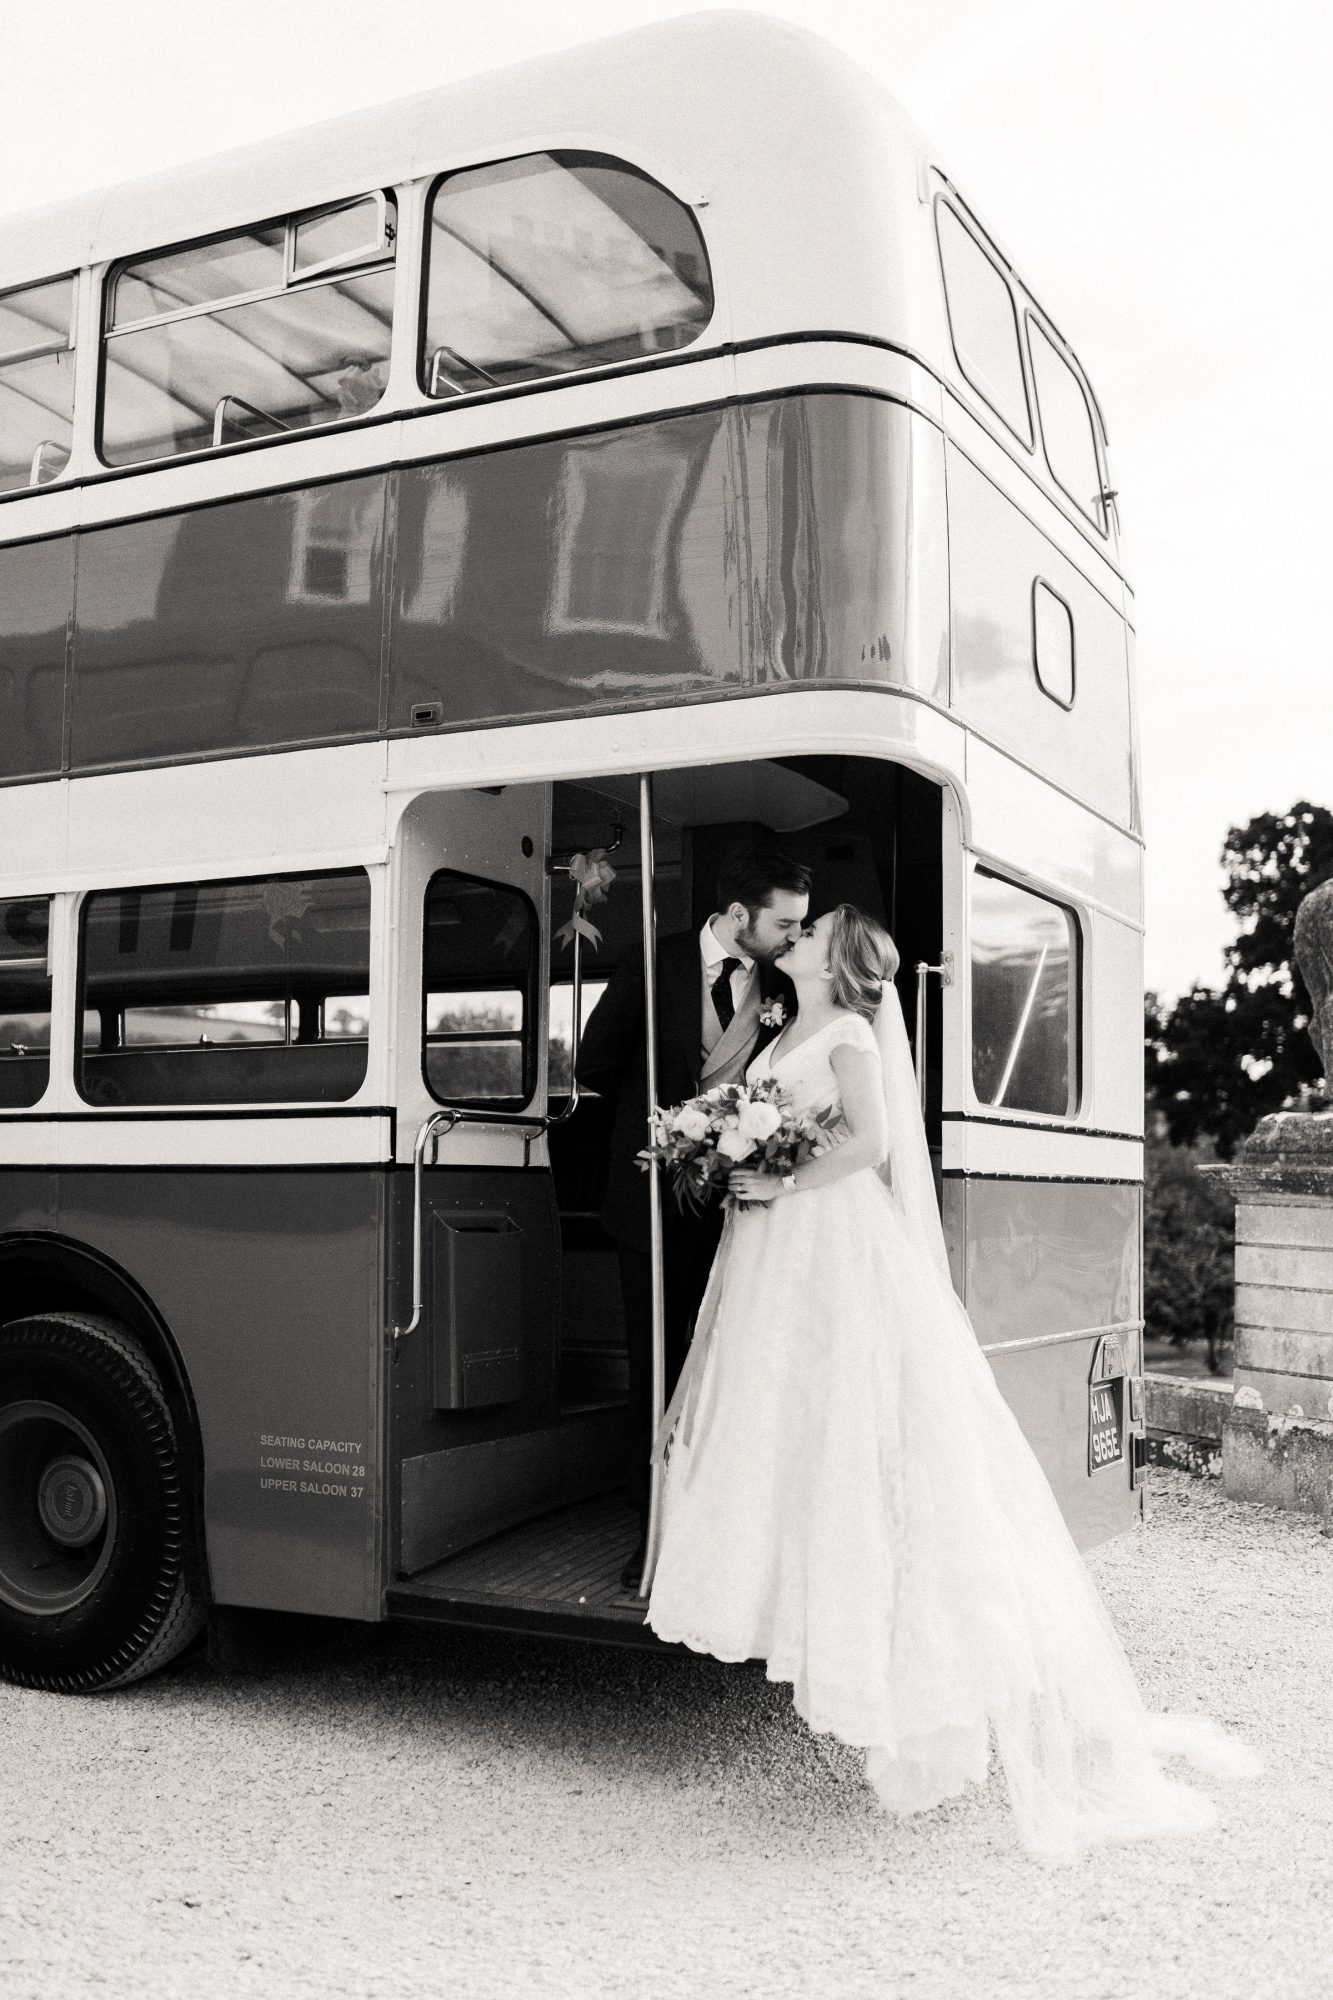 sophie christopher wedding couple on bus in black and white